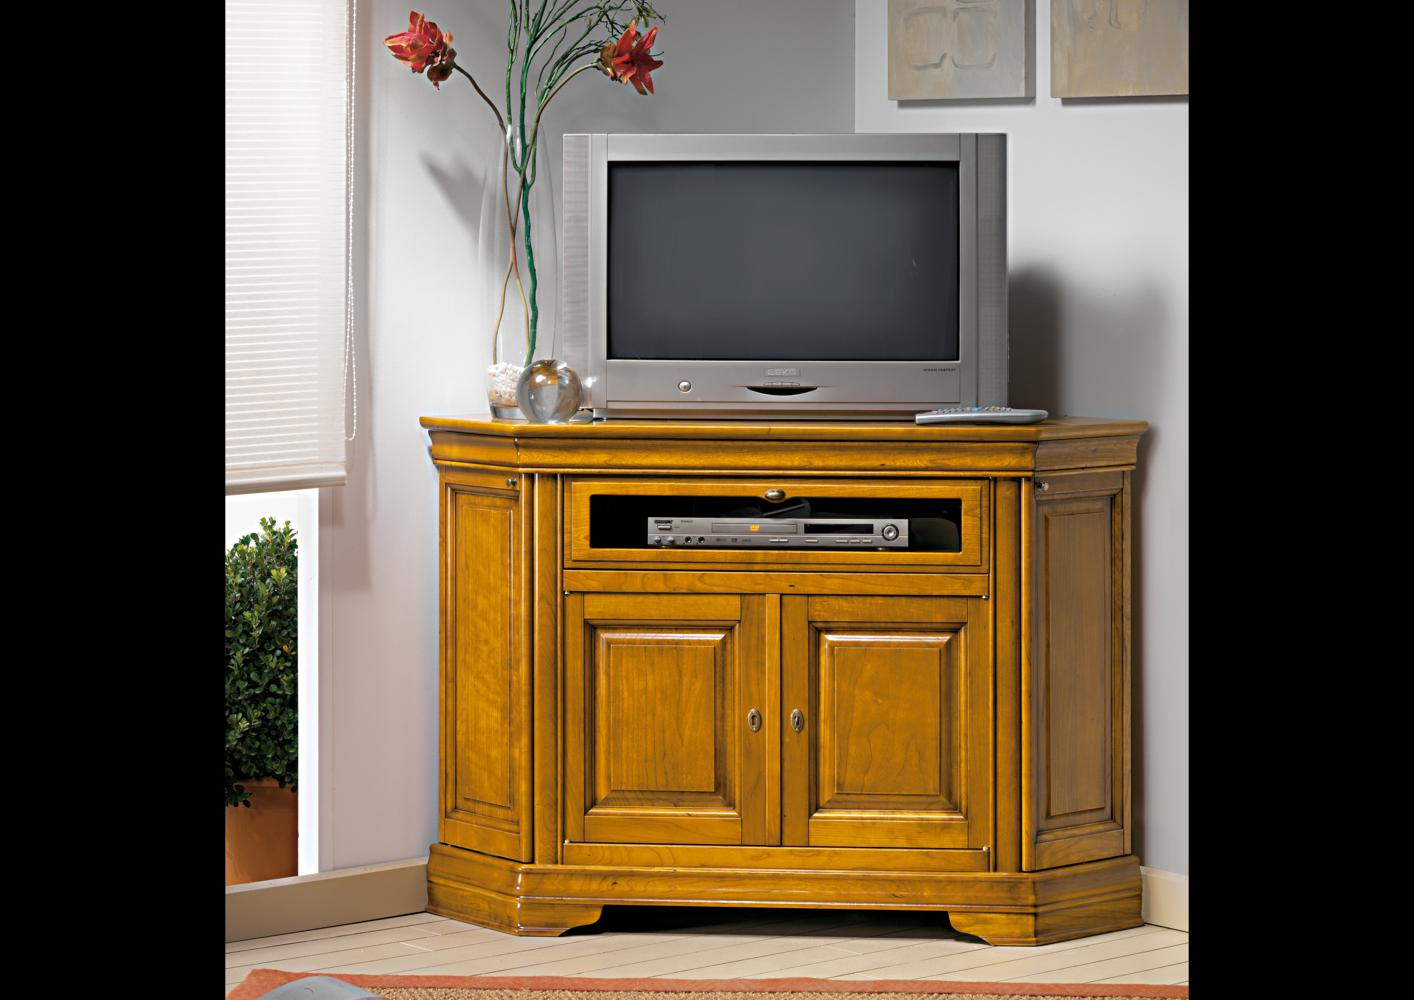 acheter votre meuble tv d 39 angle bas chez simeuble. Black Bedroom Furniture Sets. Home Design Ideas